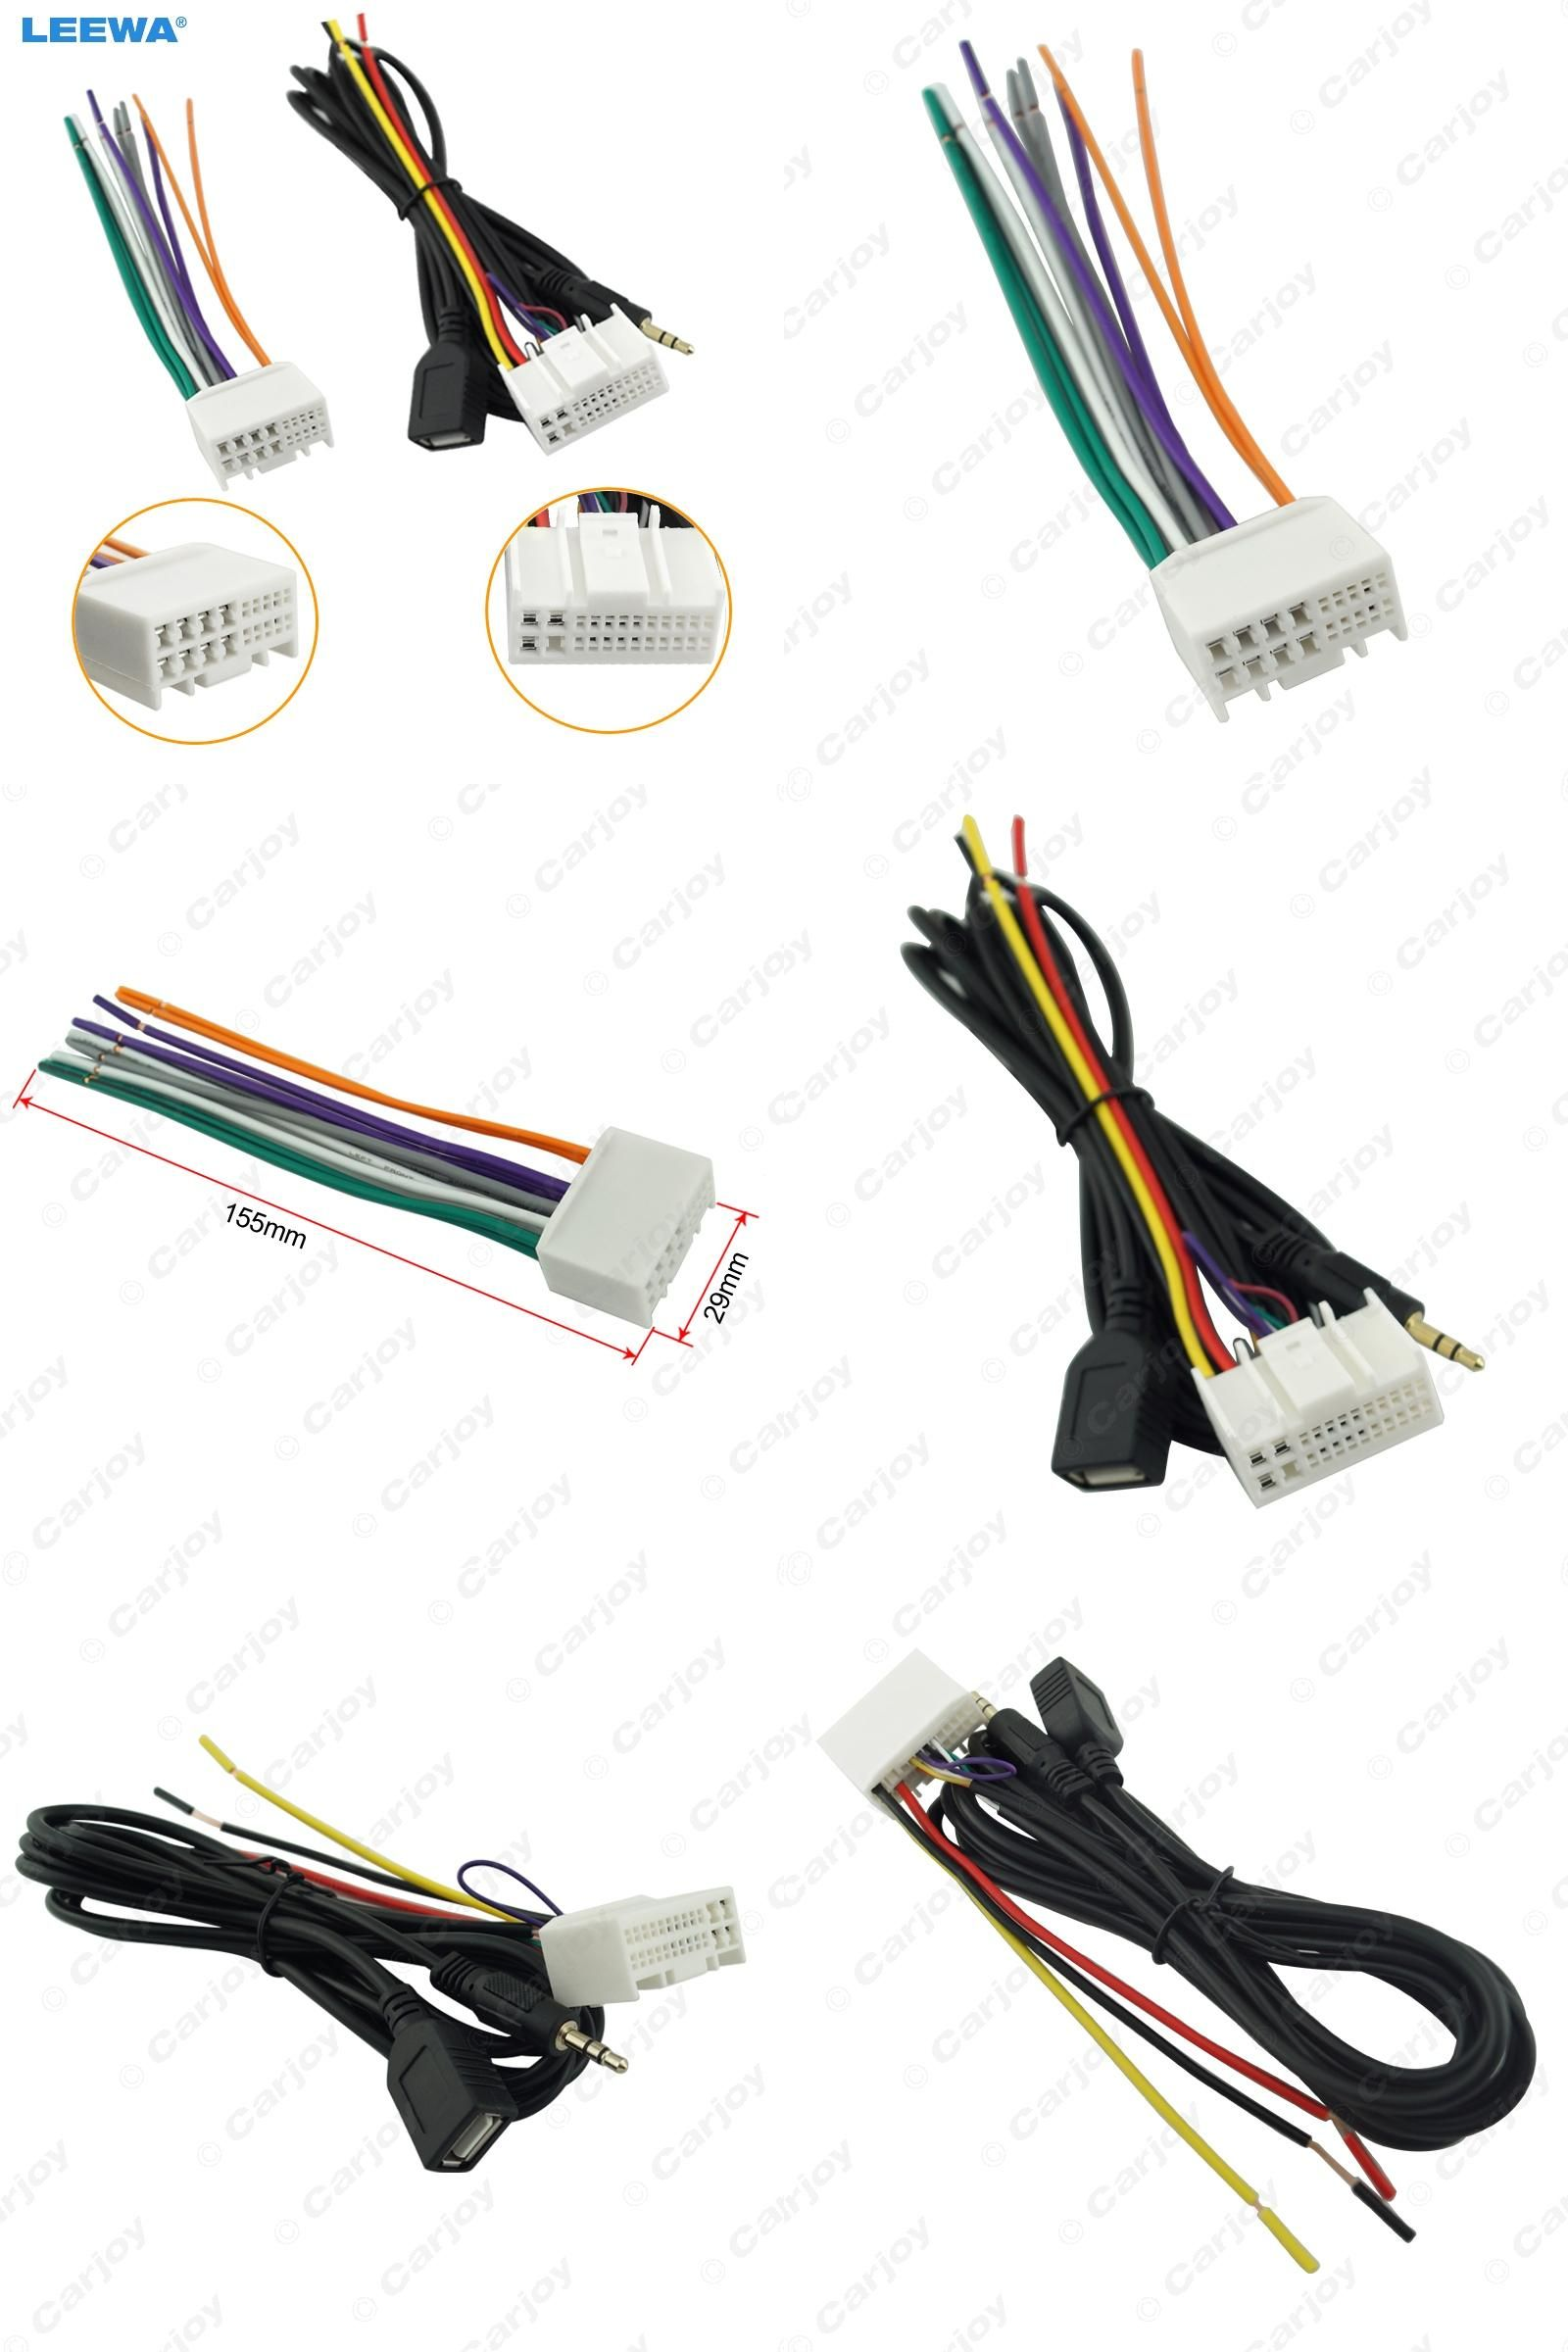 65bba15fb3a8d9bc4f1b698bf8827601 visit to buy] car audio cd stereo wiring harness adapter with usb where to buy a trailer wiring harness at edmiracle.co